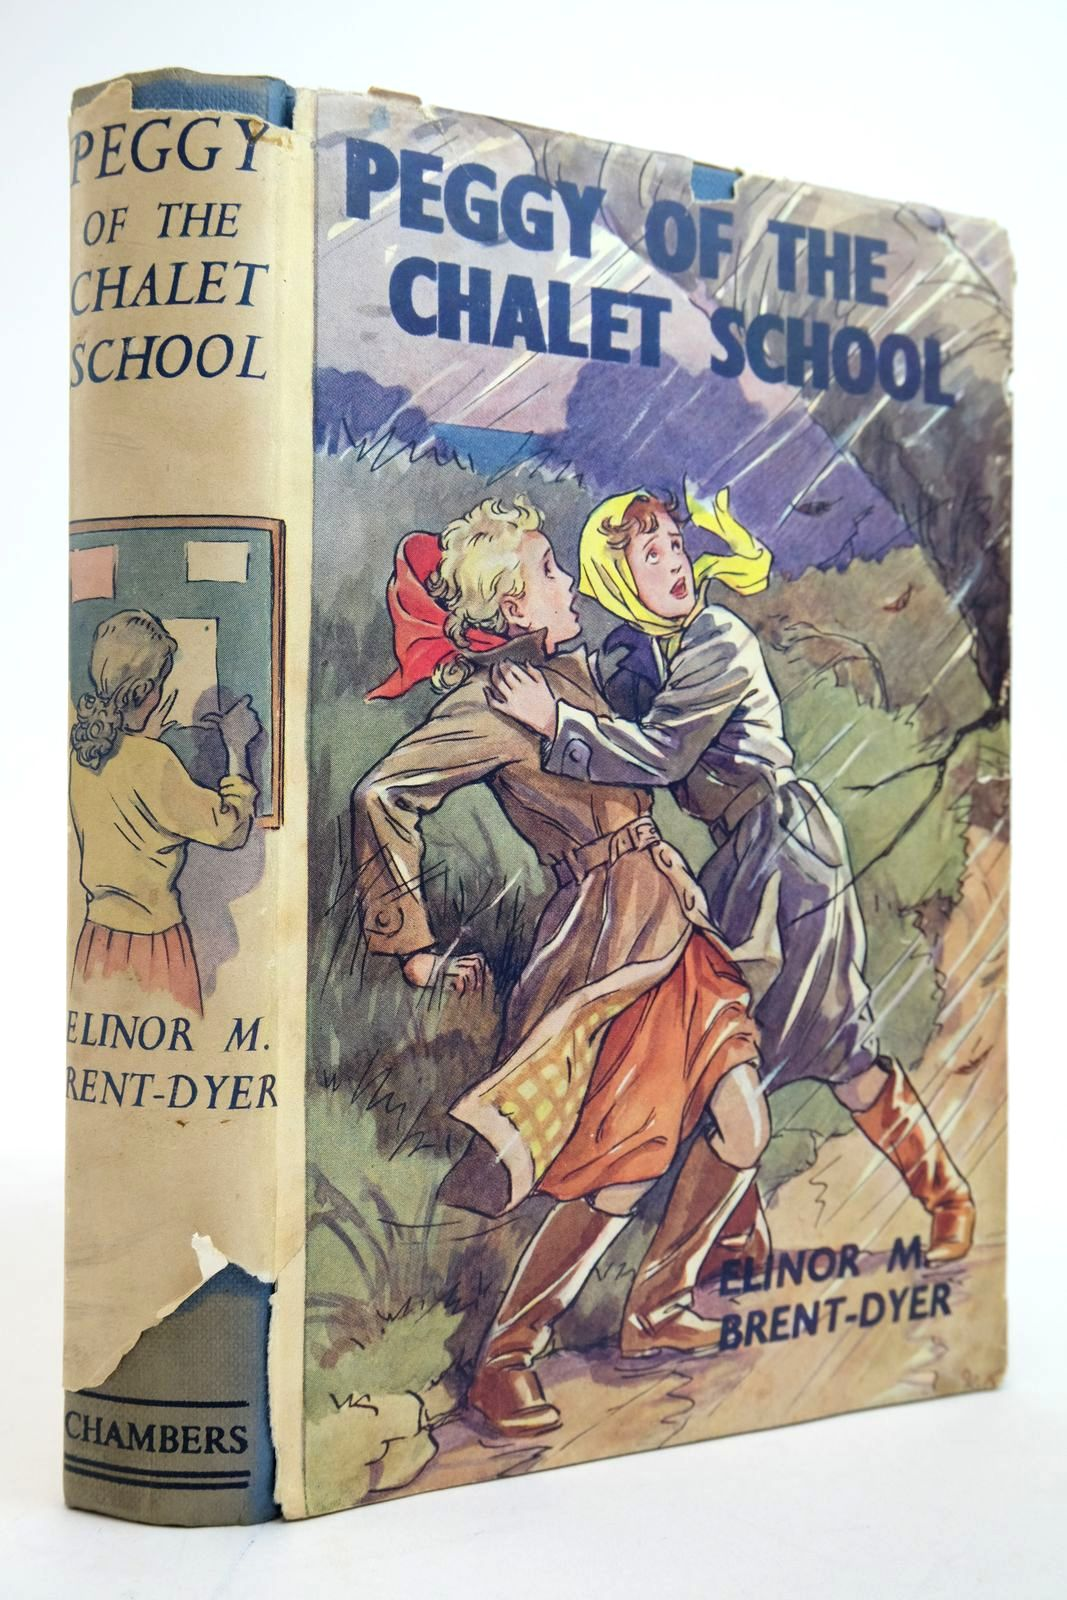 Photo of PEGGY OF THE CHALET SCHOOL written by Brent-Dyer, Elinor M. illustrated by Brisley, Nina K. published by W. & R. Chambers Limited (STOCK CODE: 2135243)  for sale by Stella & Rose's Books